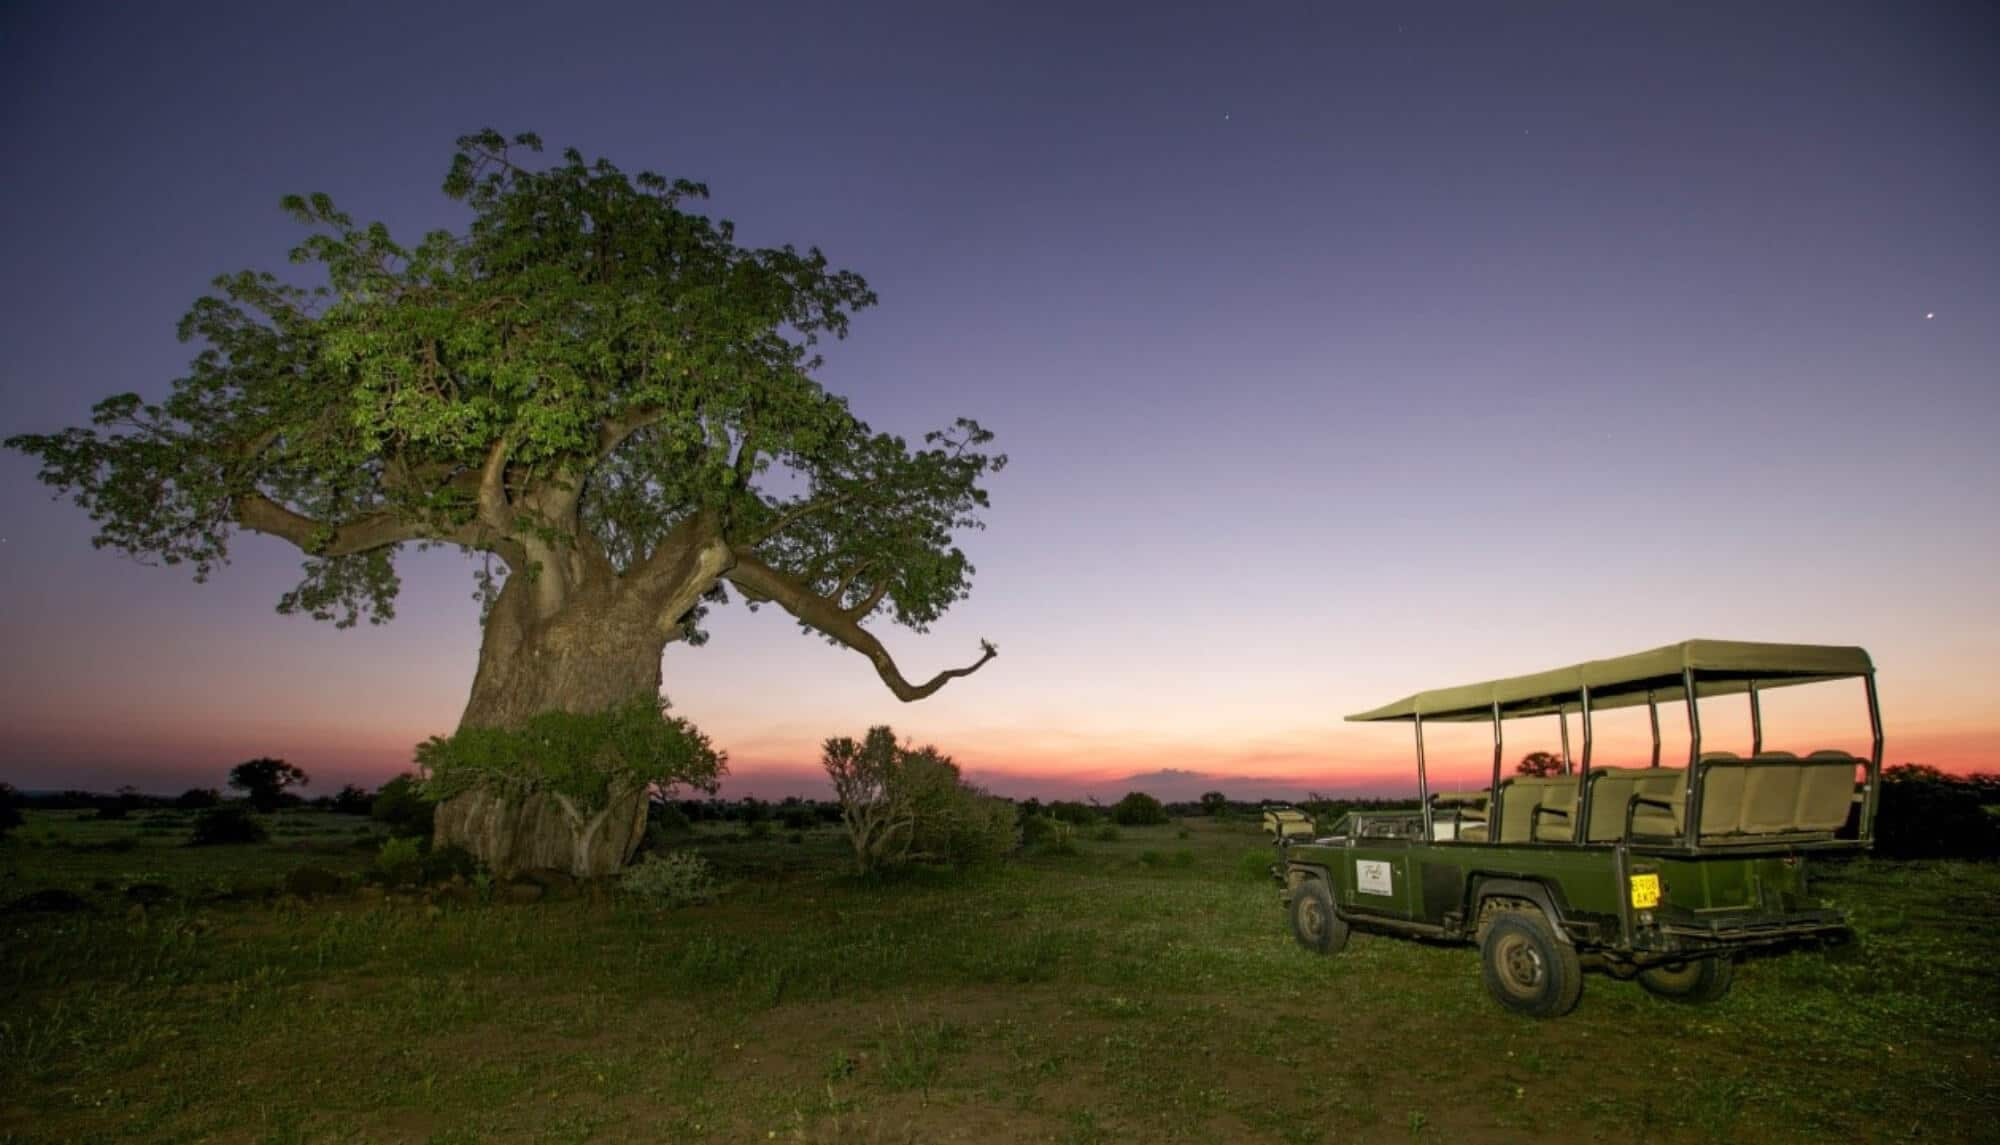 tree and jeep